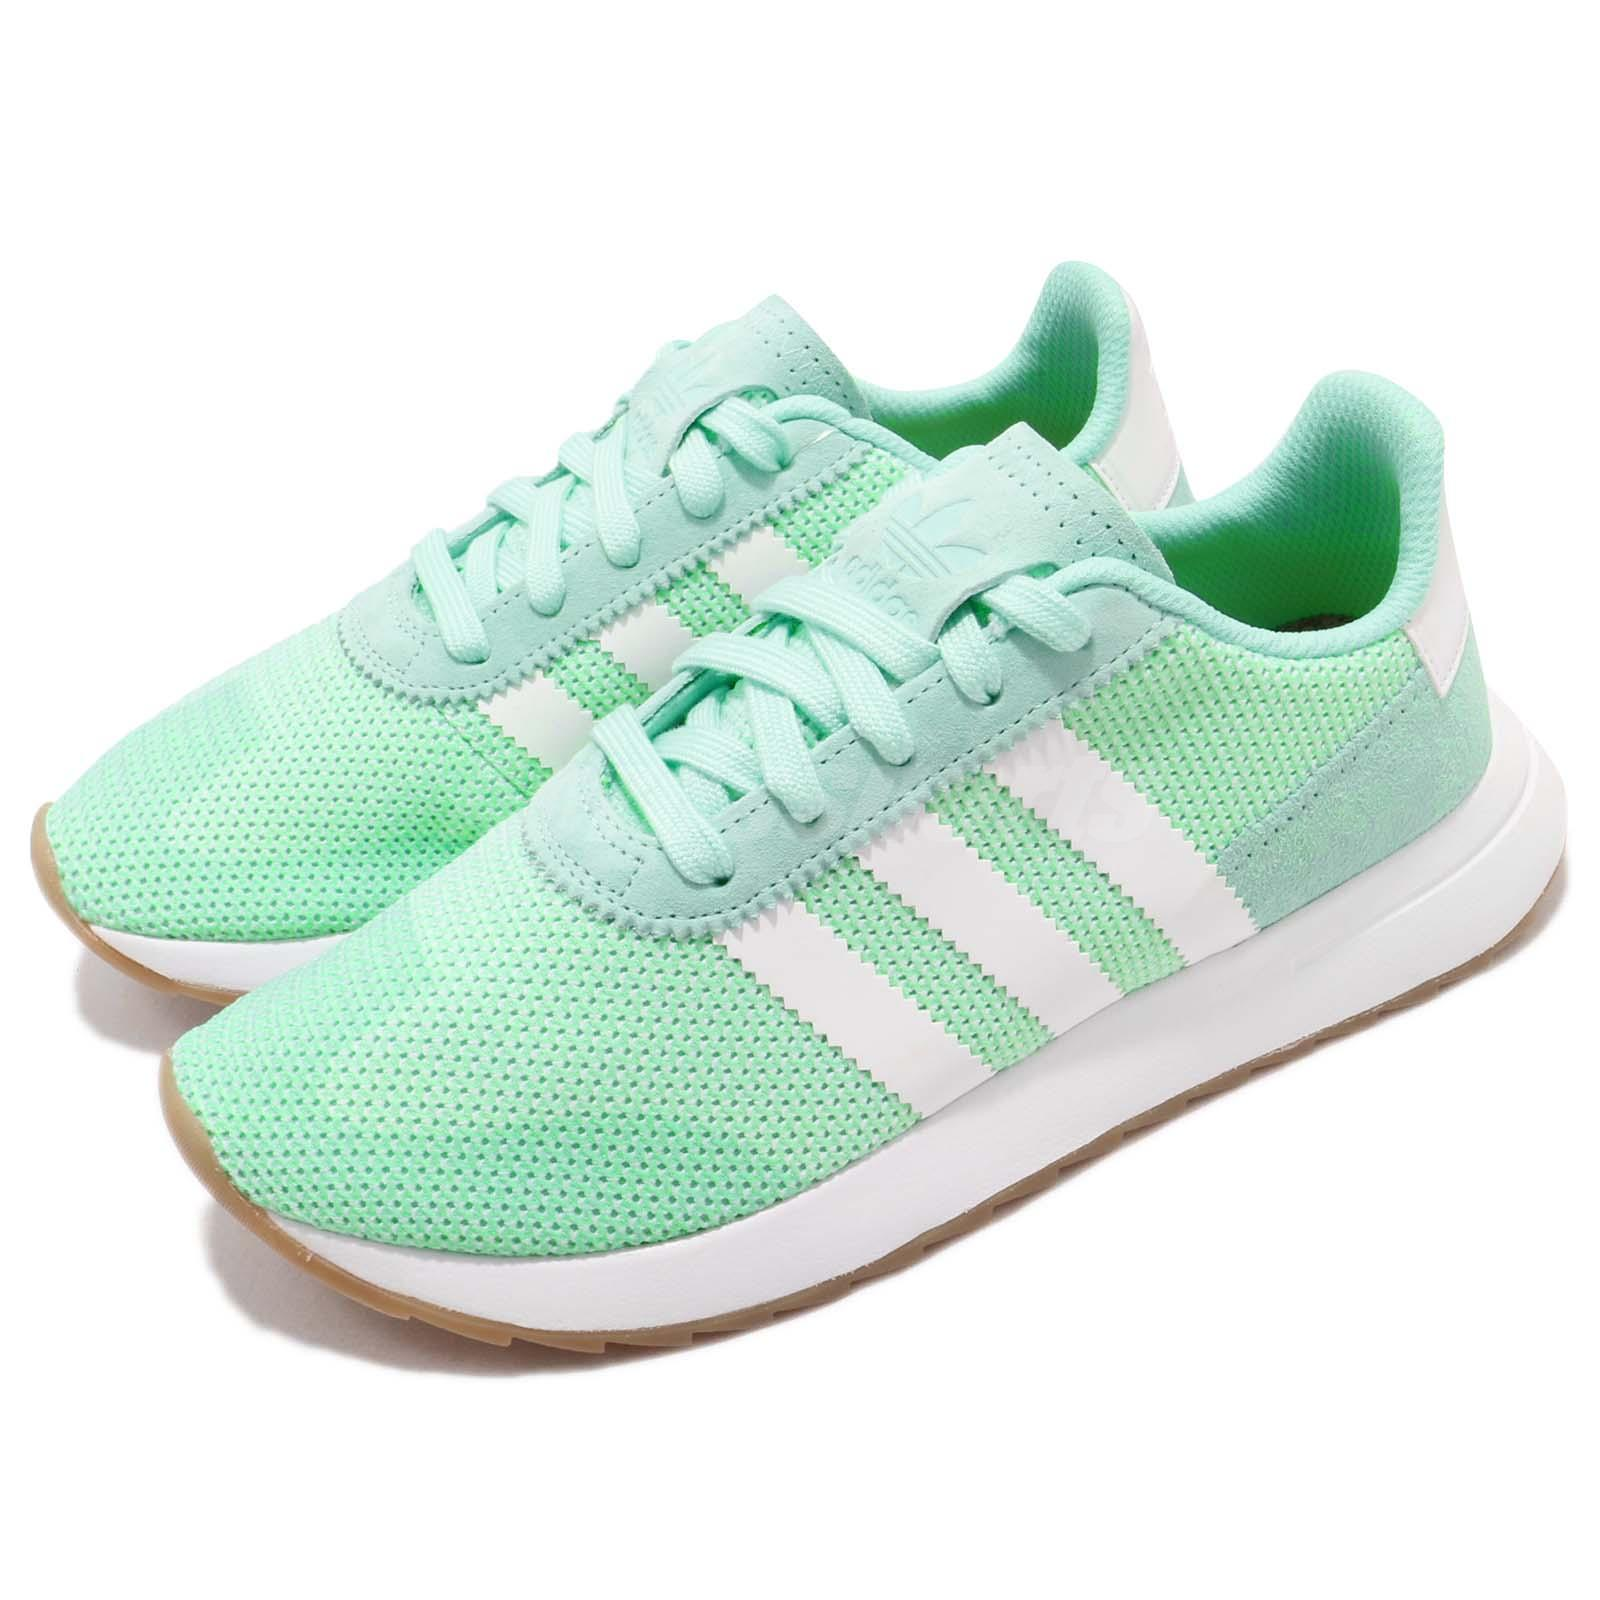 cheaper 42c89 c30e0 Details about adidas Originals FLBRunner W Flashback Green White Women  Running Shoes DB2122